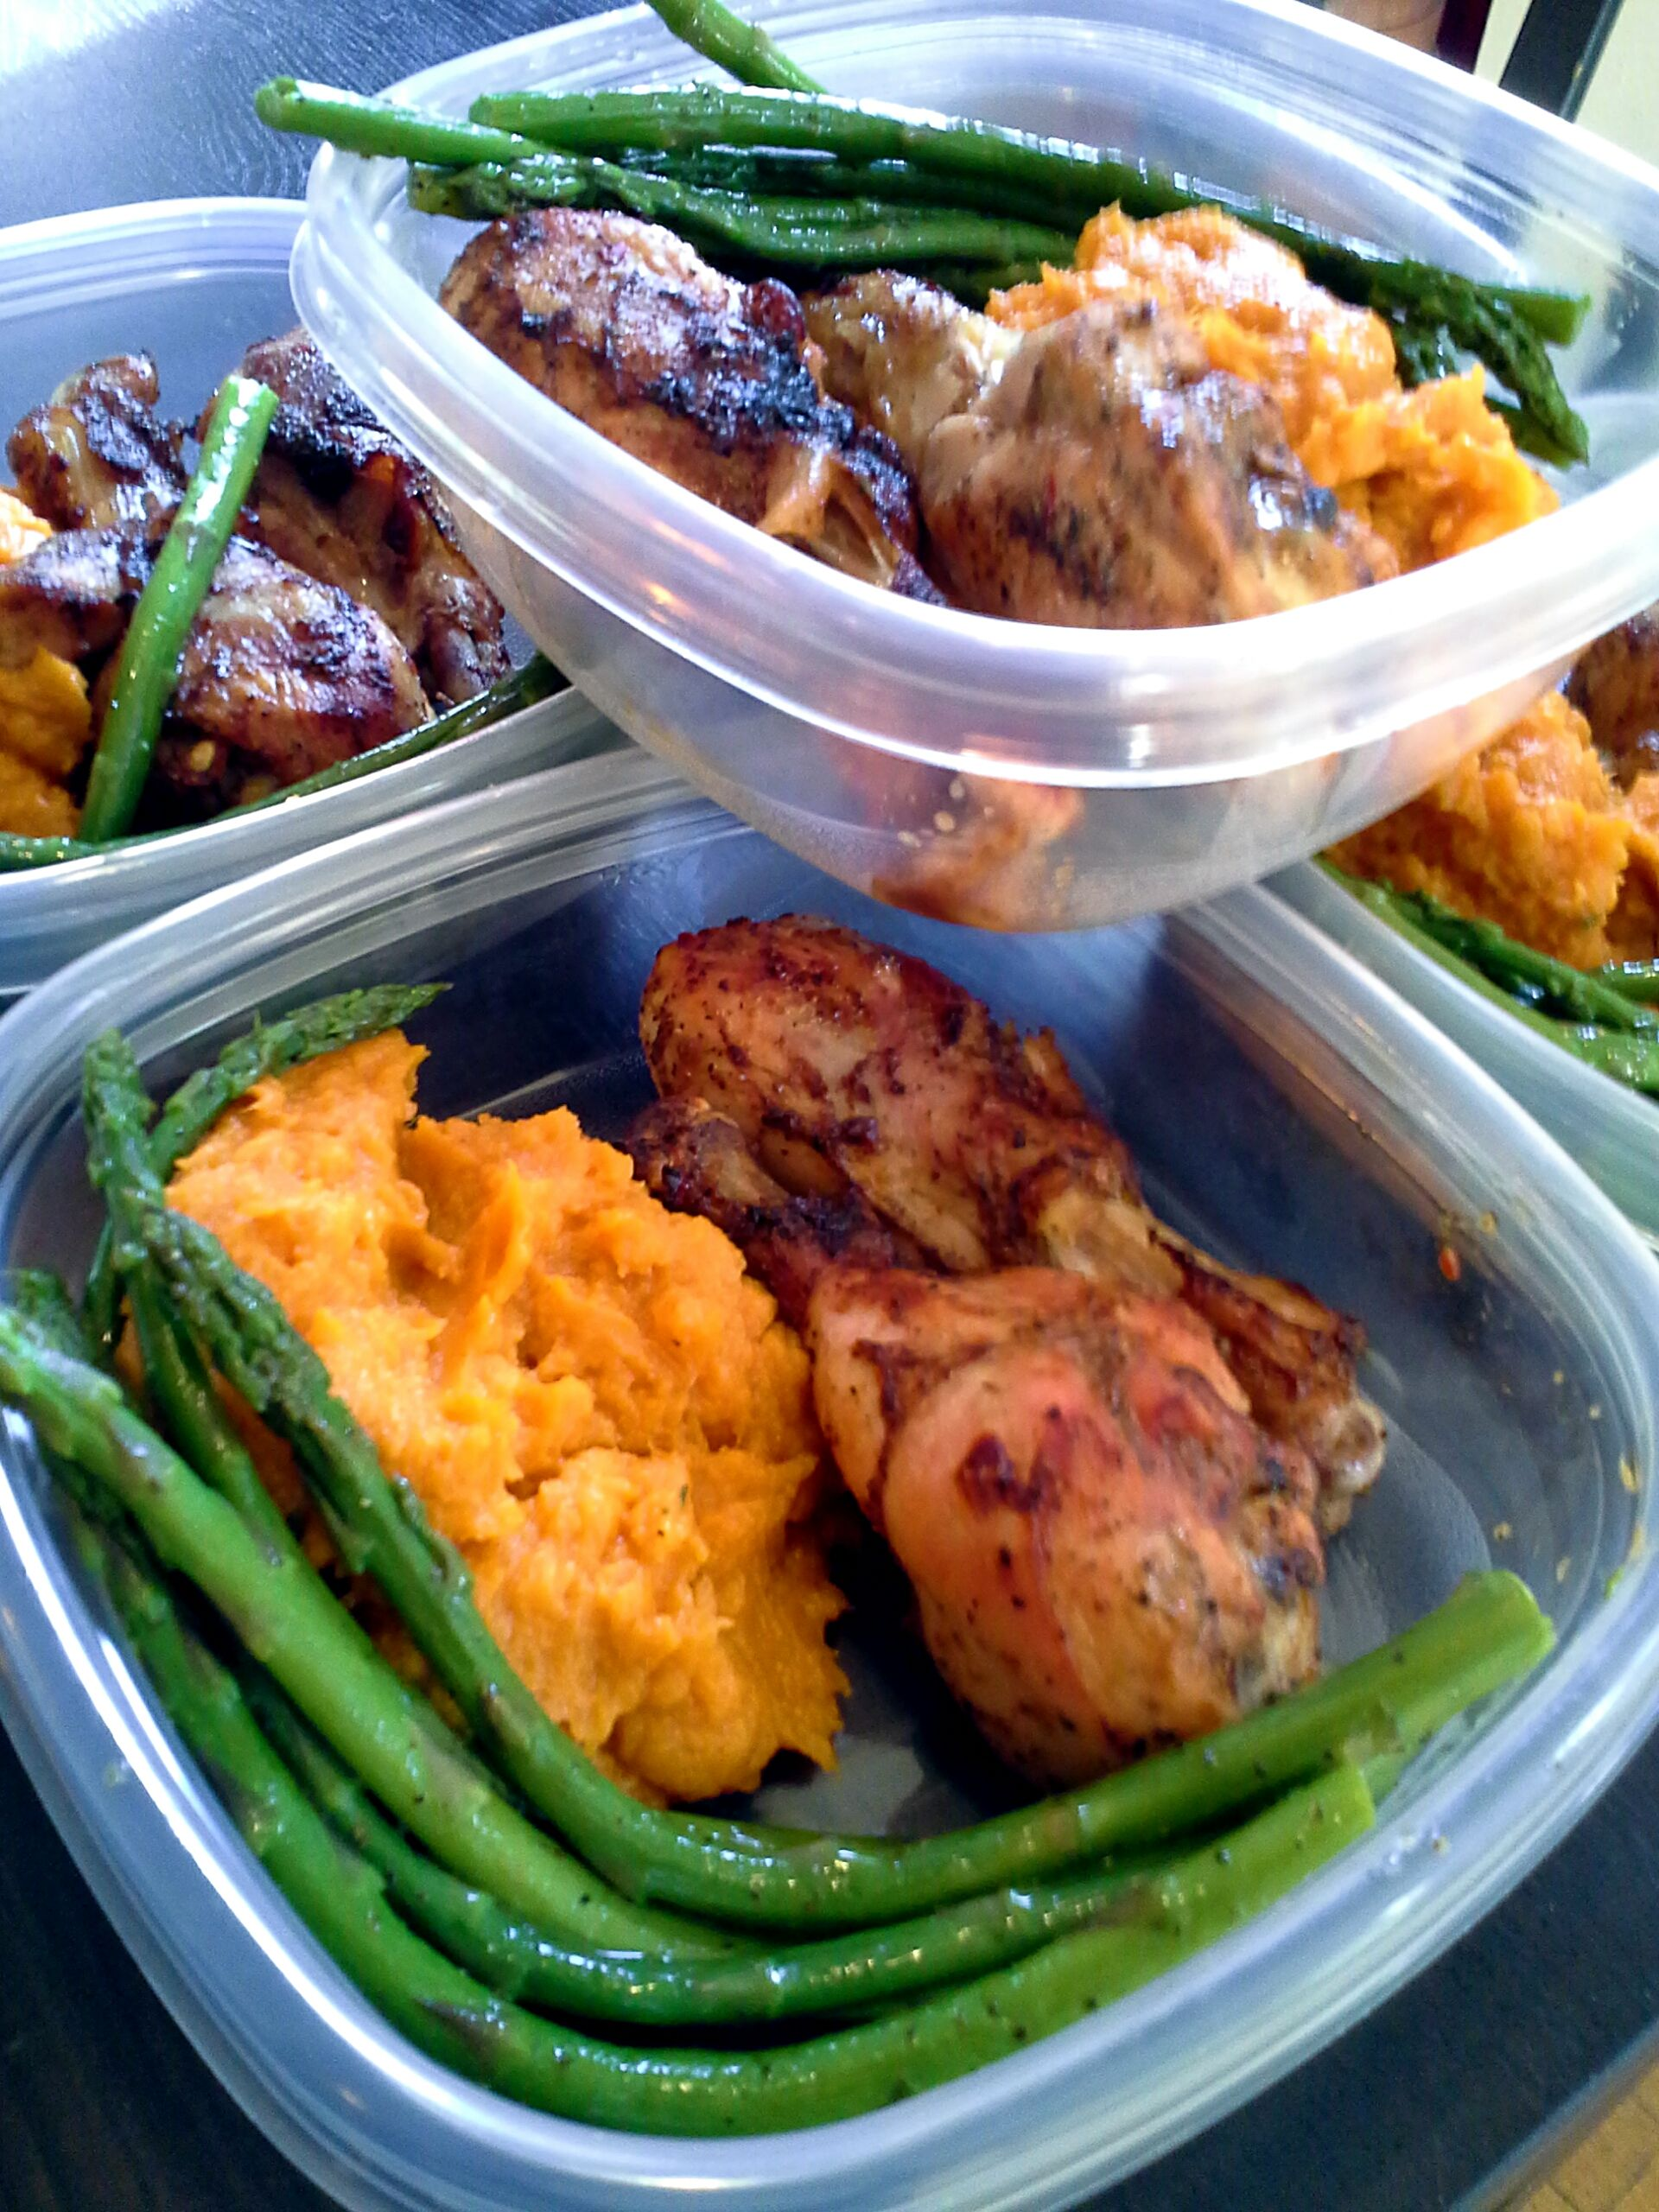 Meal Prep Whipped Yams Asparagus And Baked Chicken Recipes To